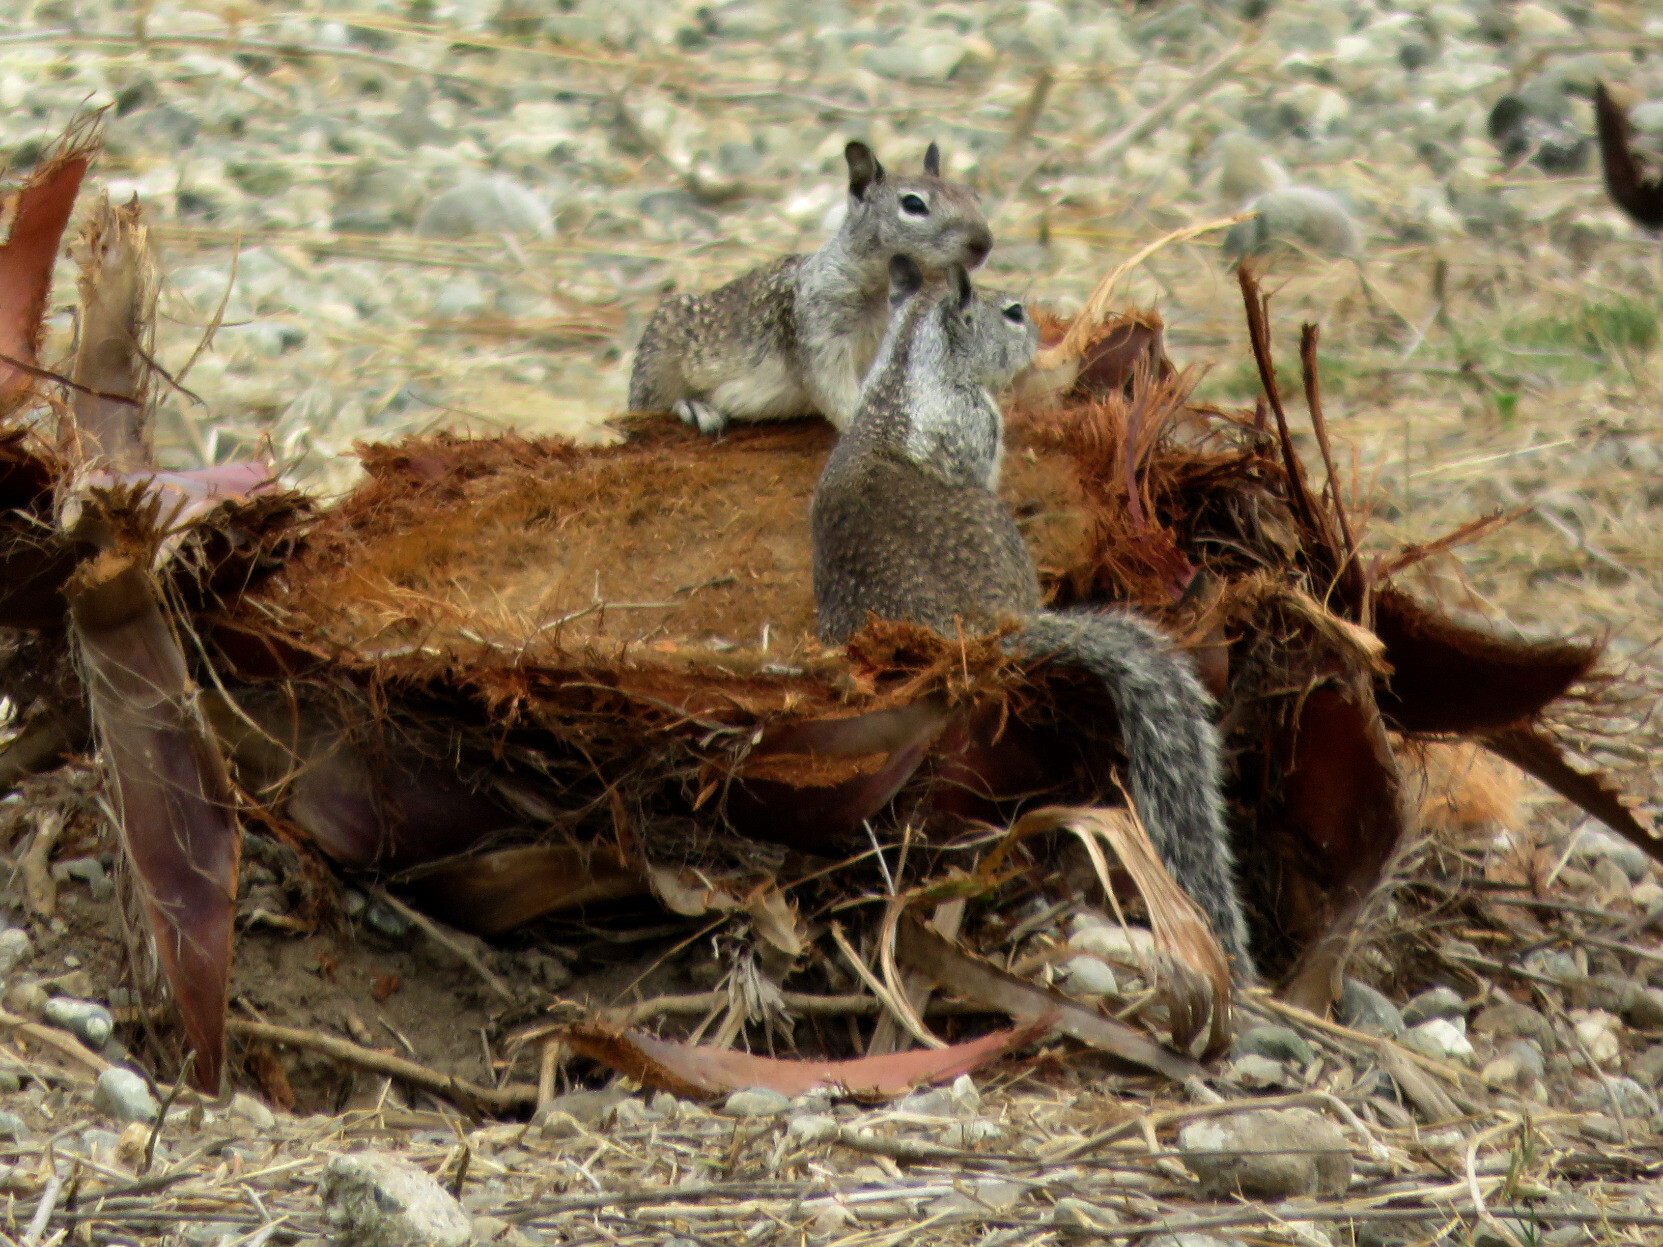 Two ground squirrels, light brown and gray, with mottled patterns on their backs and narrow tails, sitting on a palm tree stump.